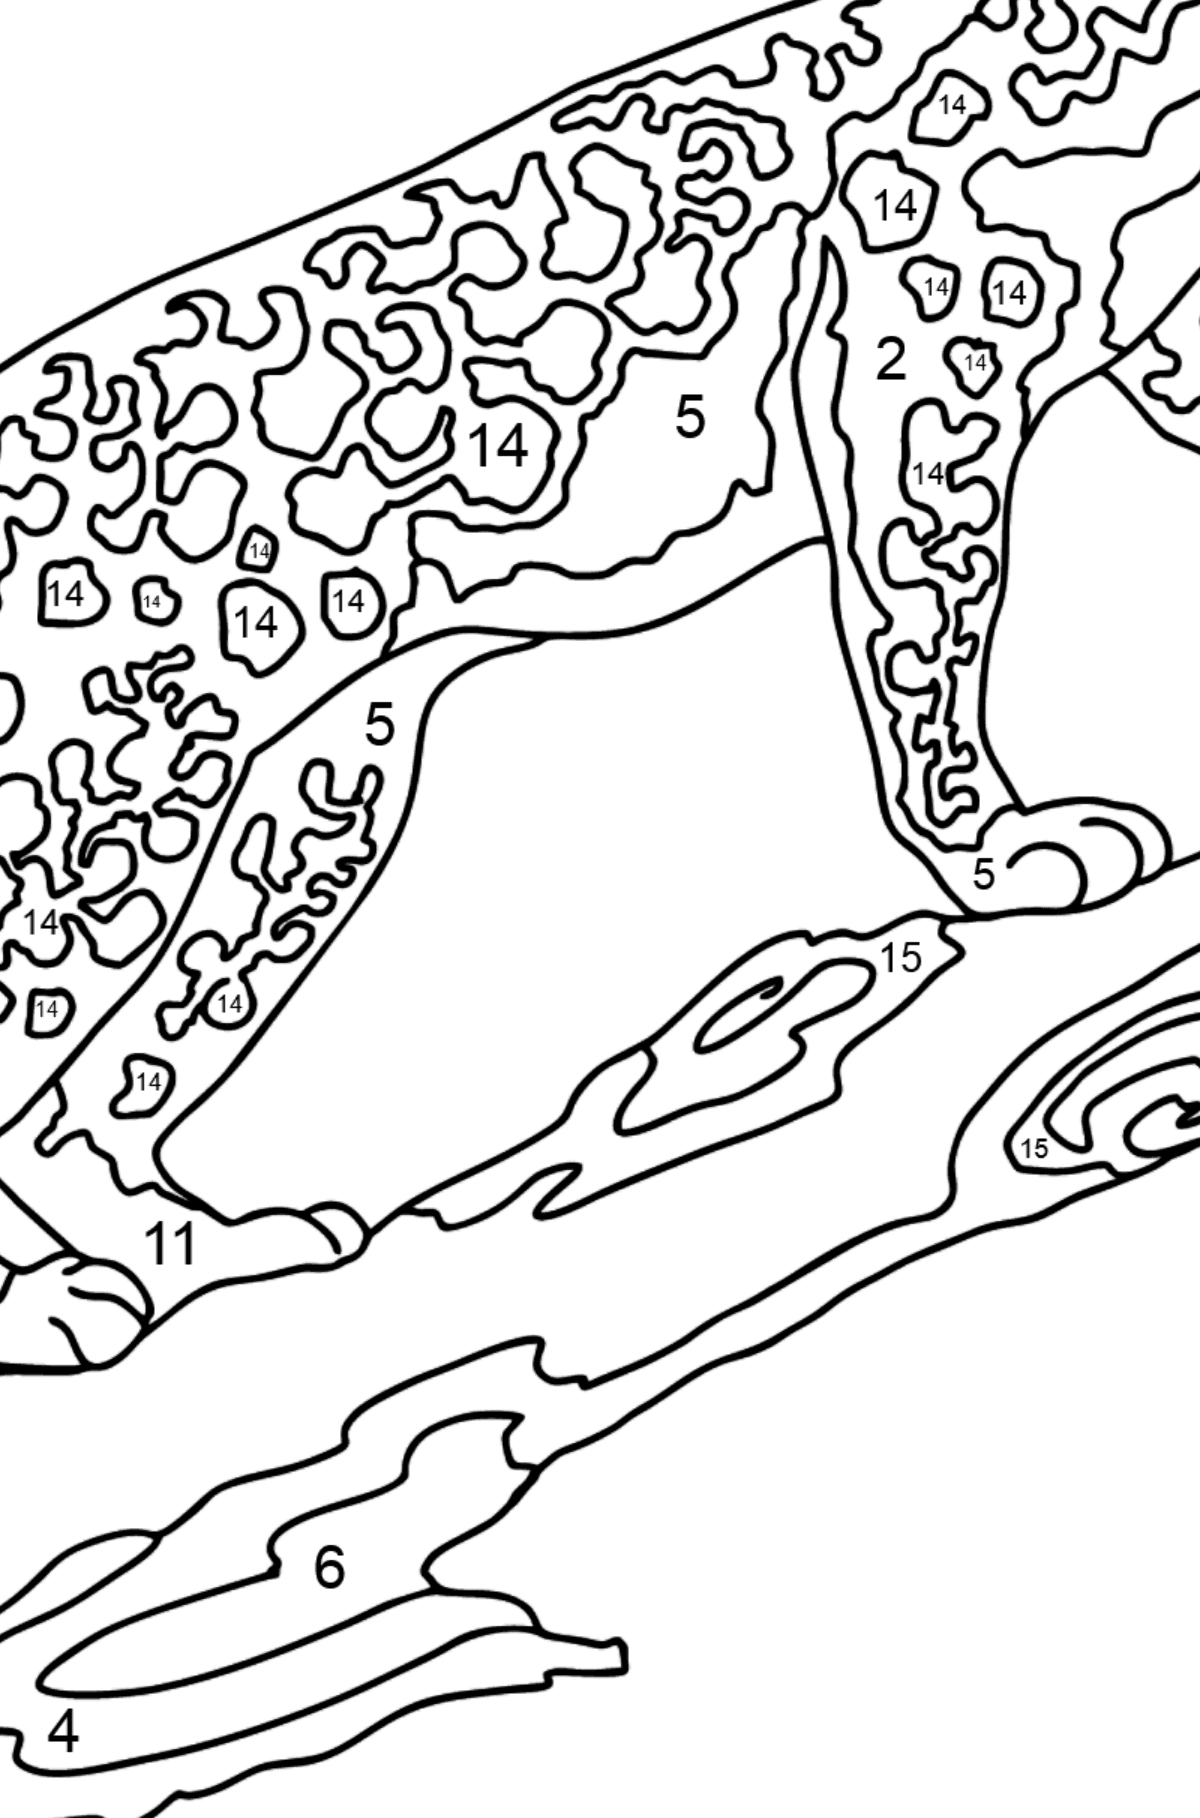 Coloring Page - A Leopard is on a Hunt - Coloring by Numbers for Kids